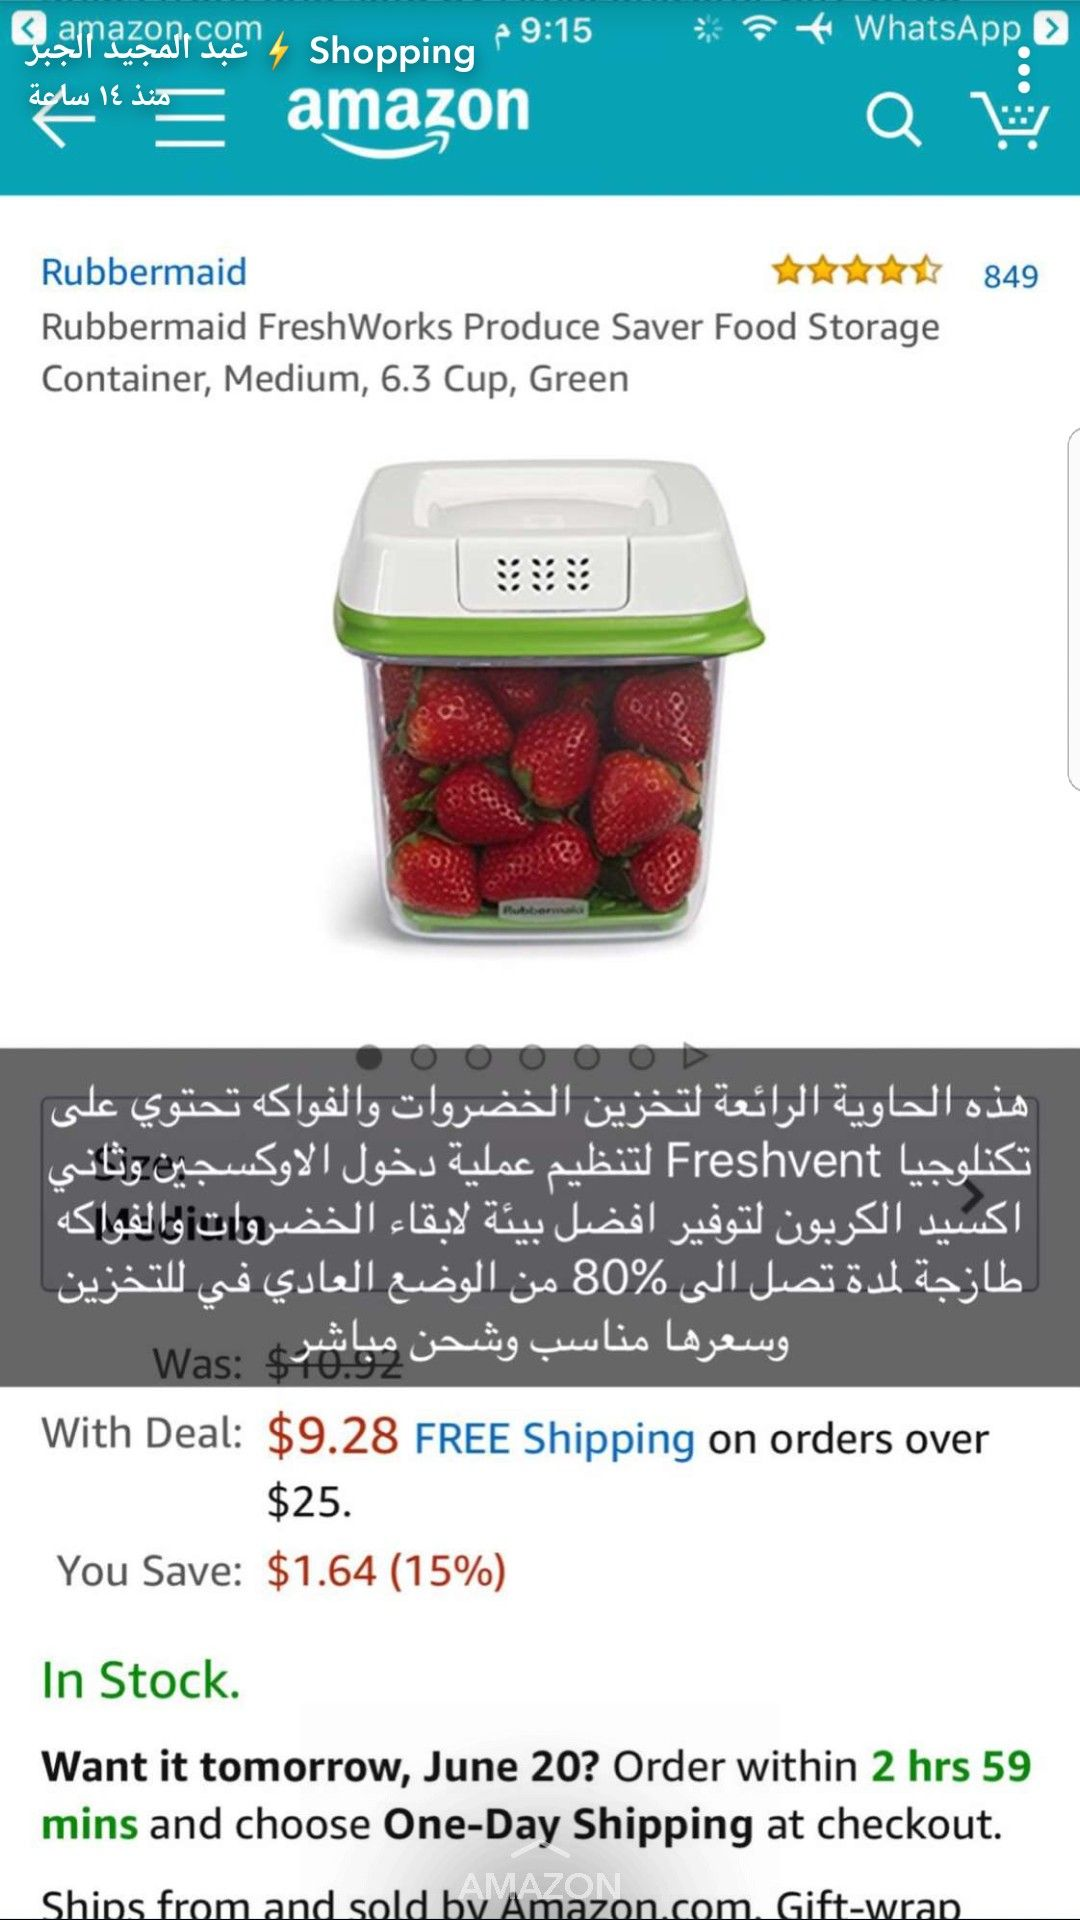 Pin By Nofa Salem On امازون Amazon Online Shopping Online Shopping Websites Best Online Shopping Websites